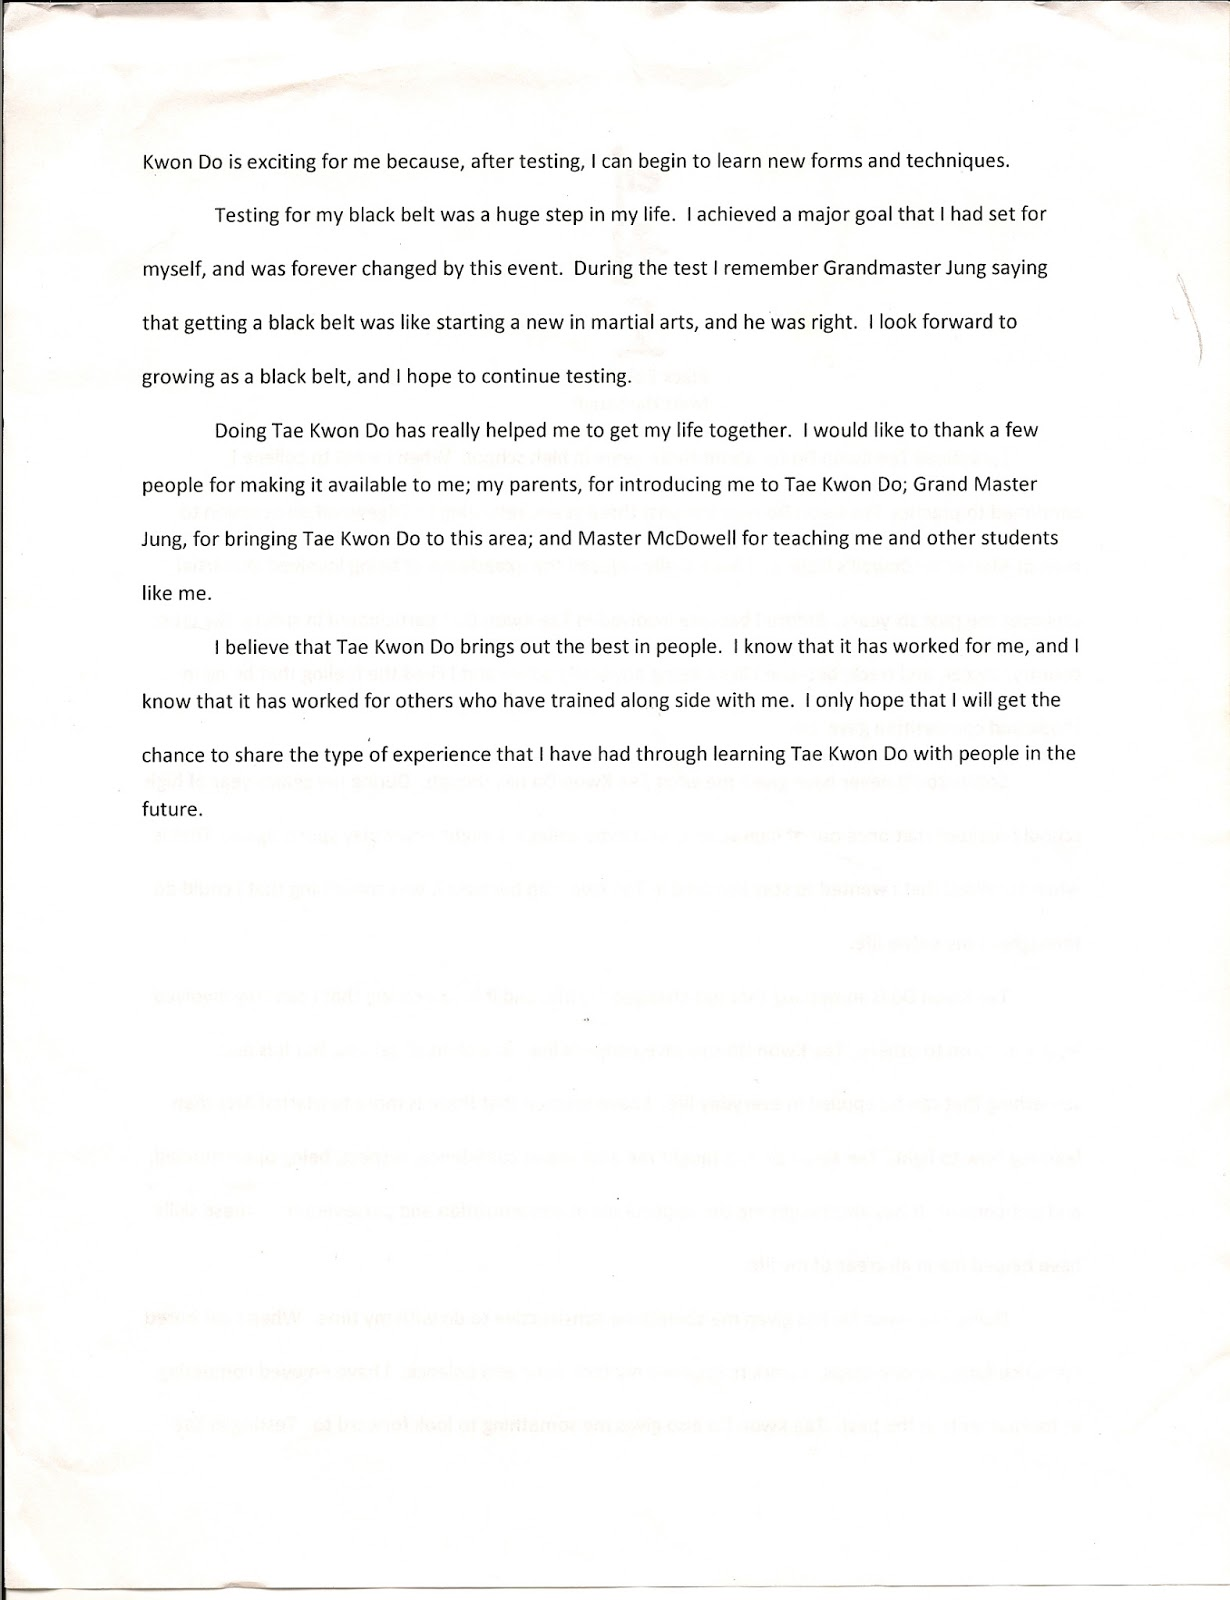 black belt essays matt harbaugh black belt essay black belt essay